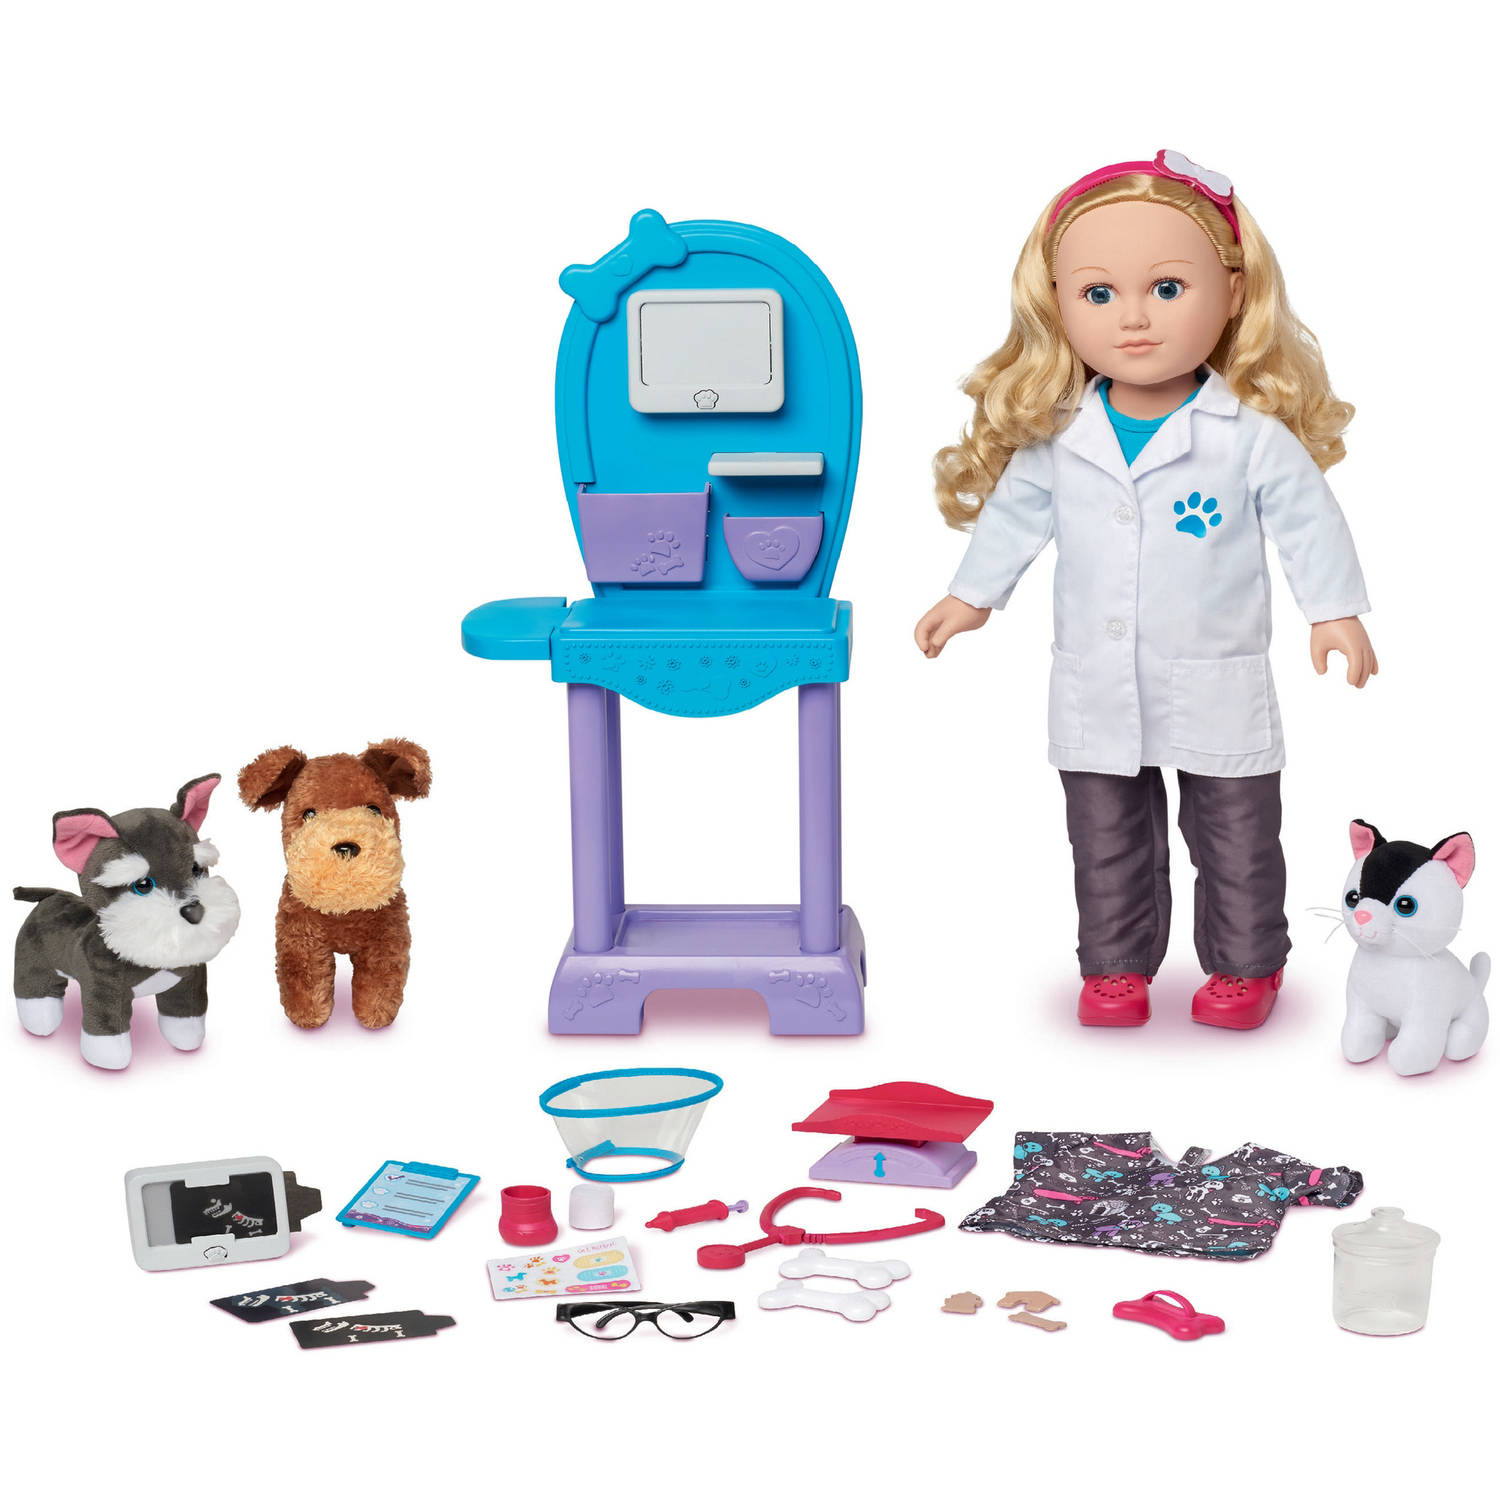 "My Life As 18"" Doll of the Year Vet Doll Play Set, Caucasian with Blonde Hair"